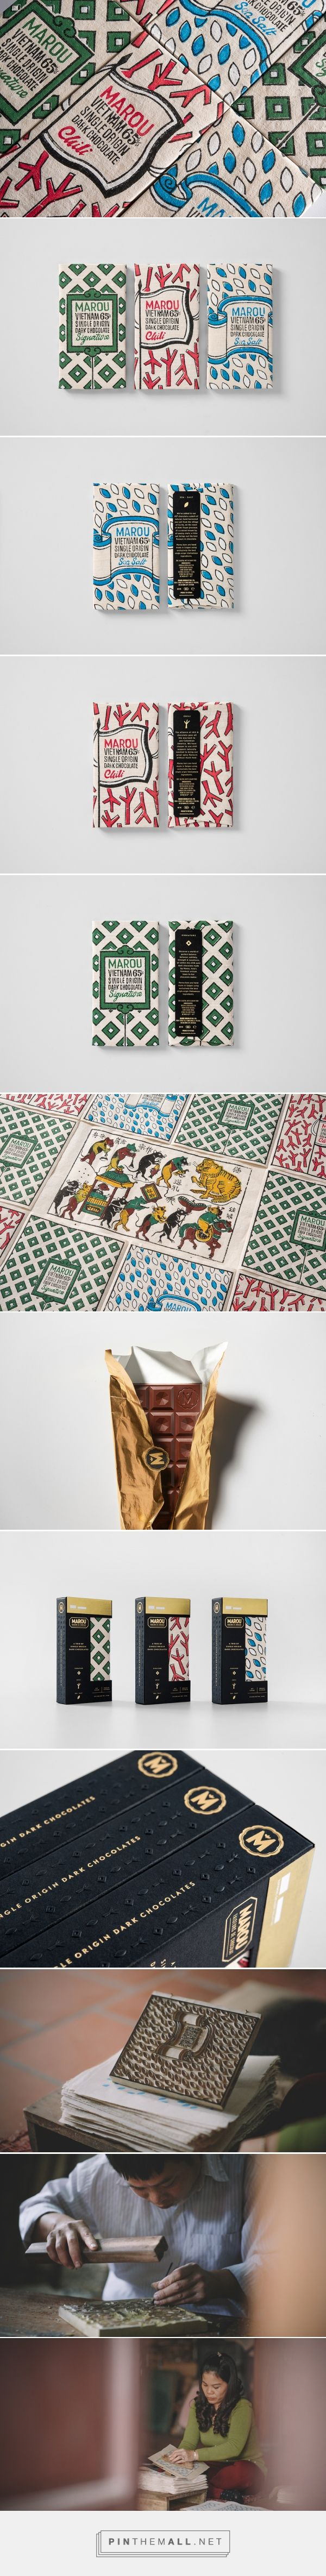 Rice Creative - Marou Chocolate for National Gallery Singapore packaging design blog World Packaging Design Society│Home of Packaging Design│Branding│Brand Design│CPG Design│FMCG Design - created via https://pinthemall.net